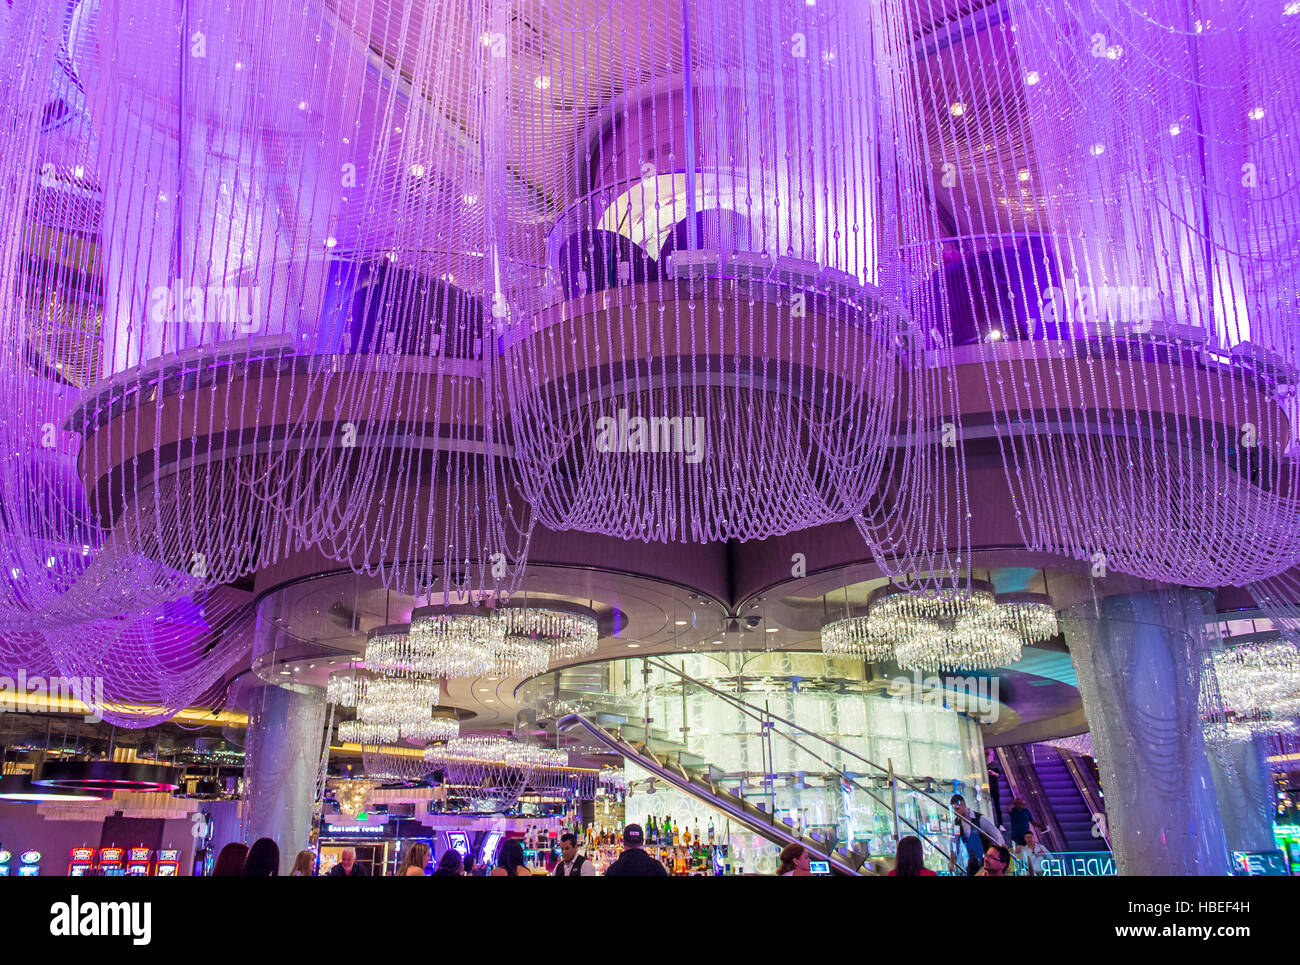 Las vegas oct 05 the chandelier bar at the cosmopolitan hotel las vegas oct 05 the chandelier bar at the cosmopolitan hotel casino in las vegas on october 05 2016 this tri level chandelier encases the hote arubaitofo Gallery